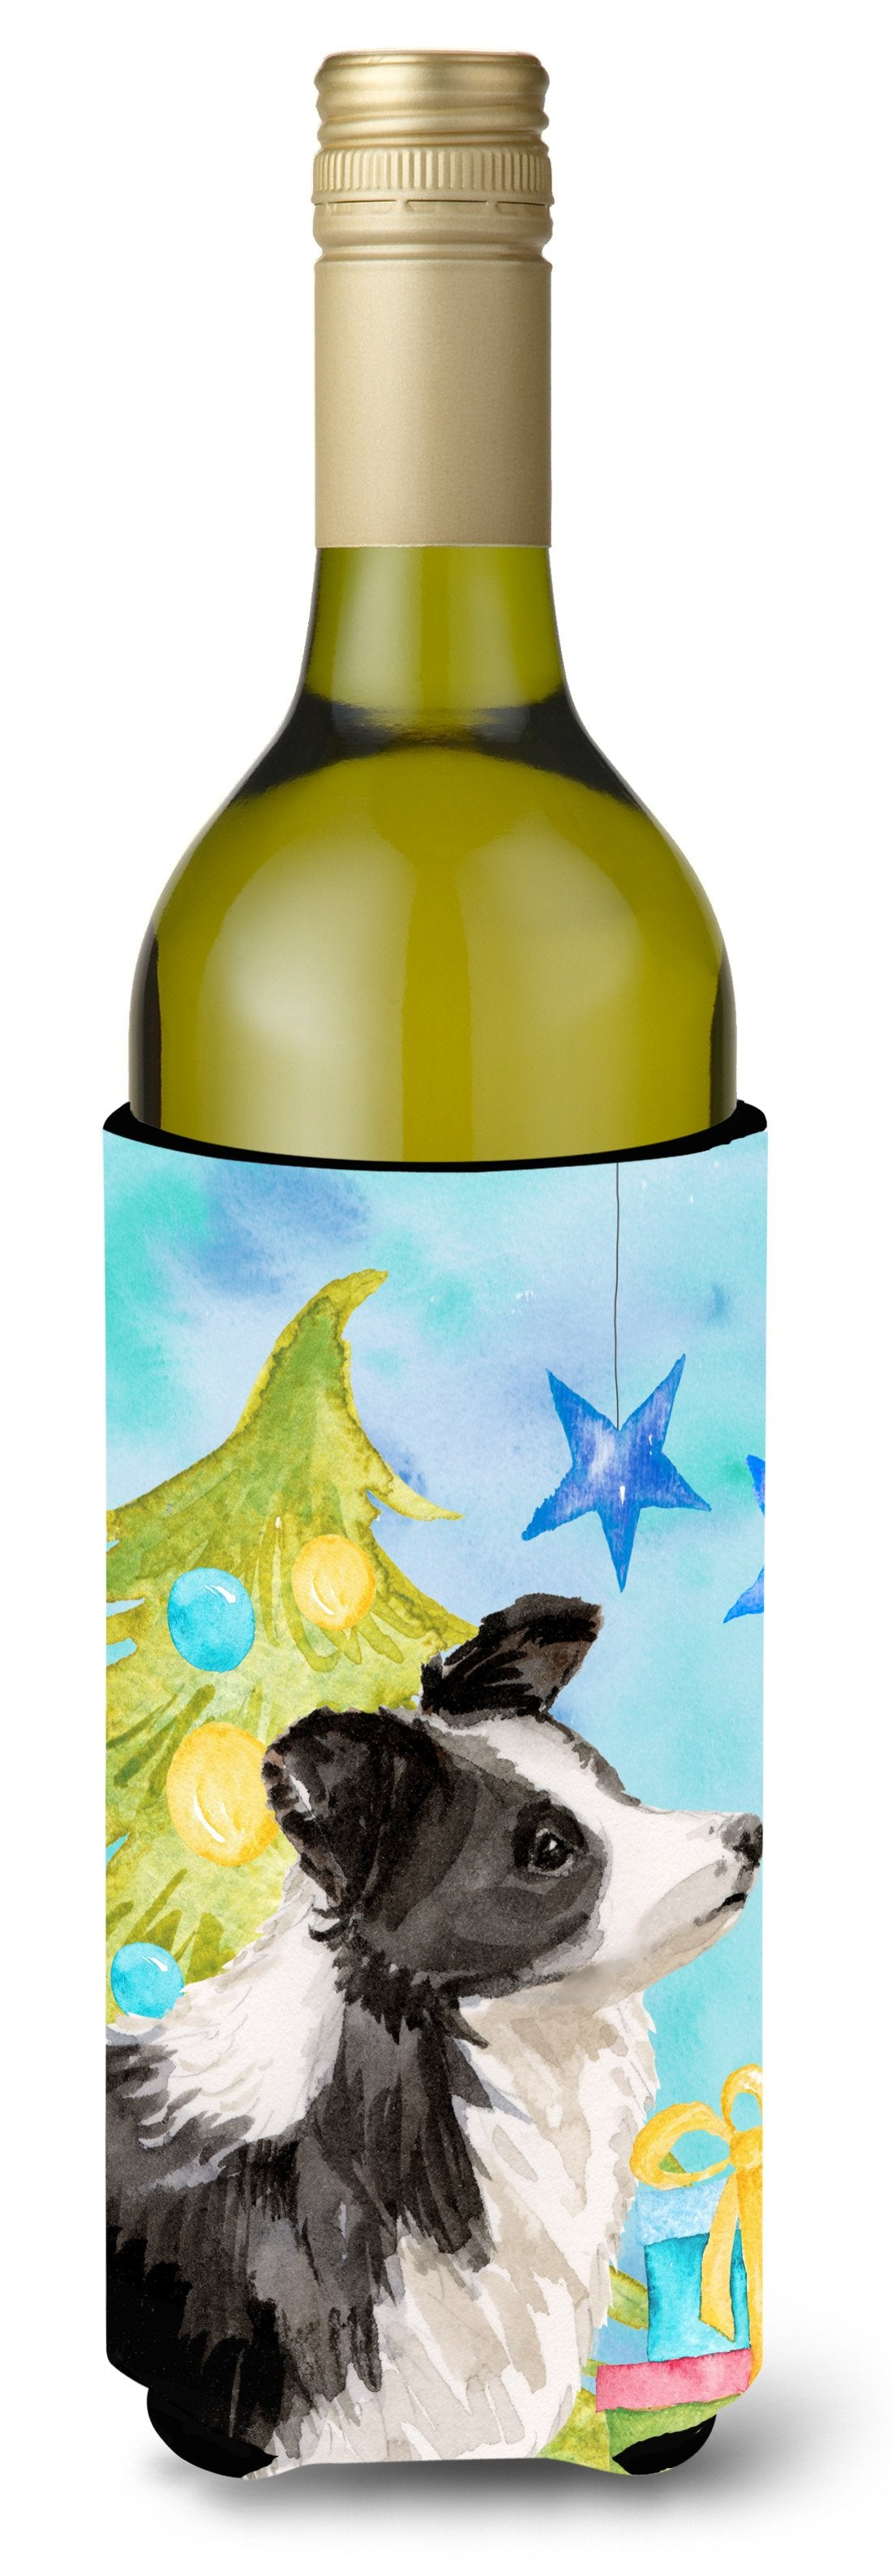 Border Collie Christmas Wine Bottle Beverge Insulator Hugger BB9408LITERK by Caroline's Treasures